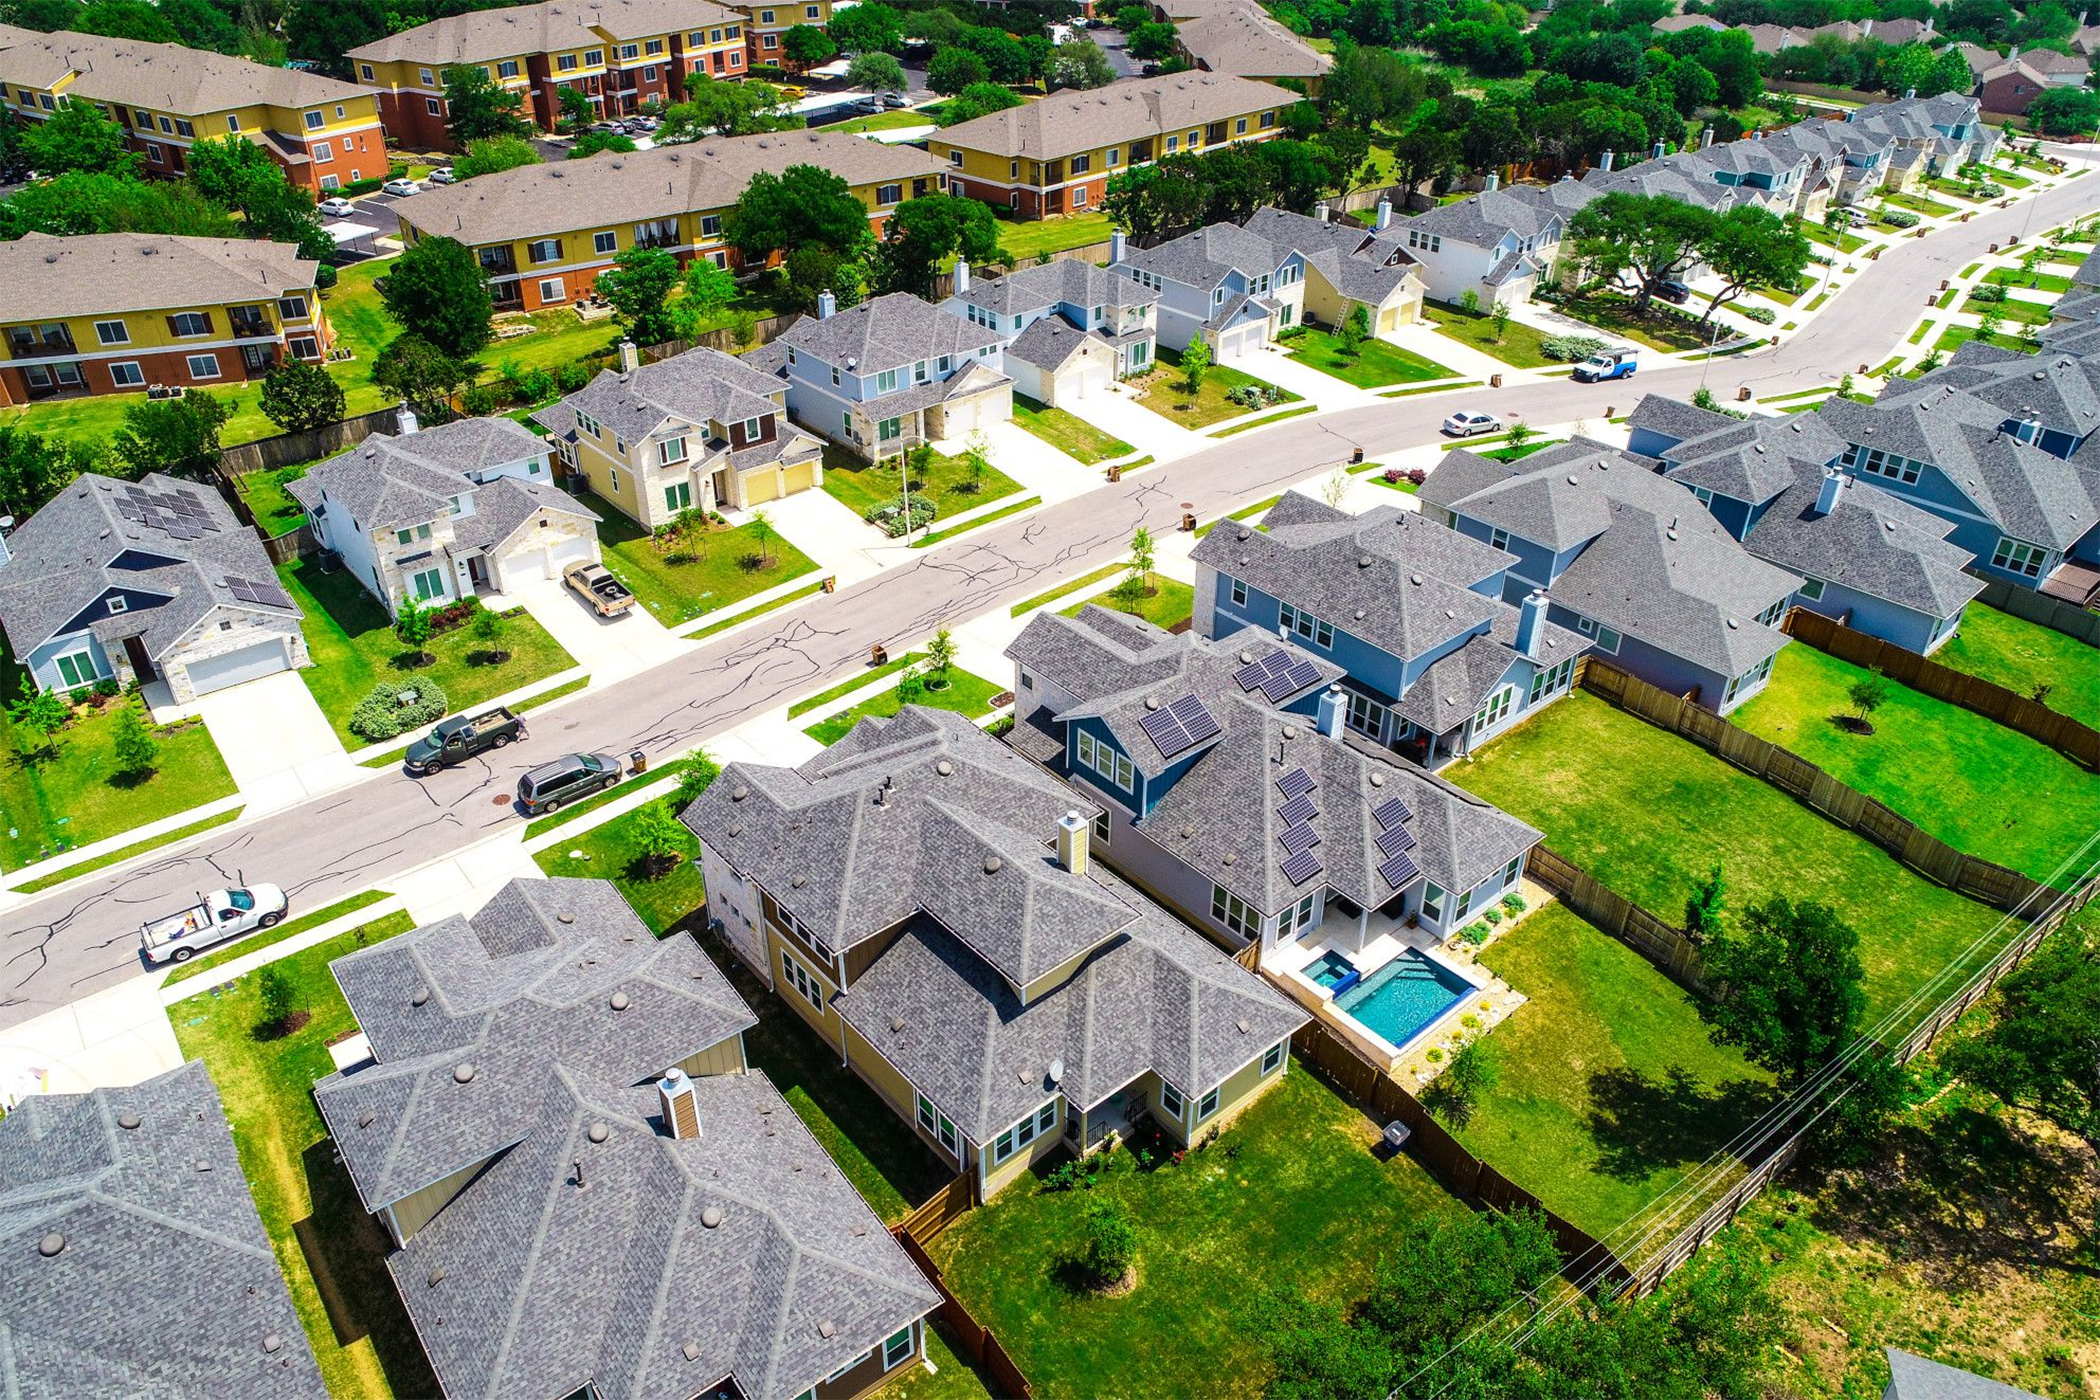 In recent years, single-family rental homes have emerged as an attractive housing option for tenants. (Getty Images)